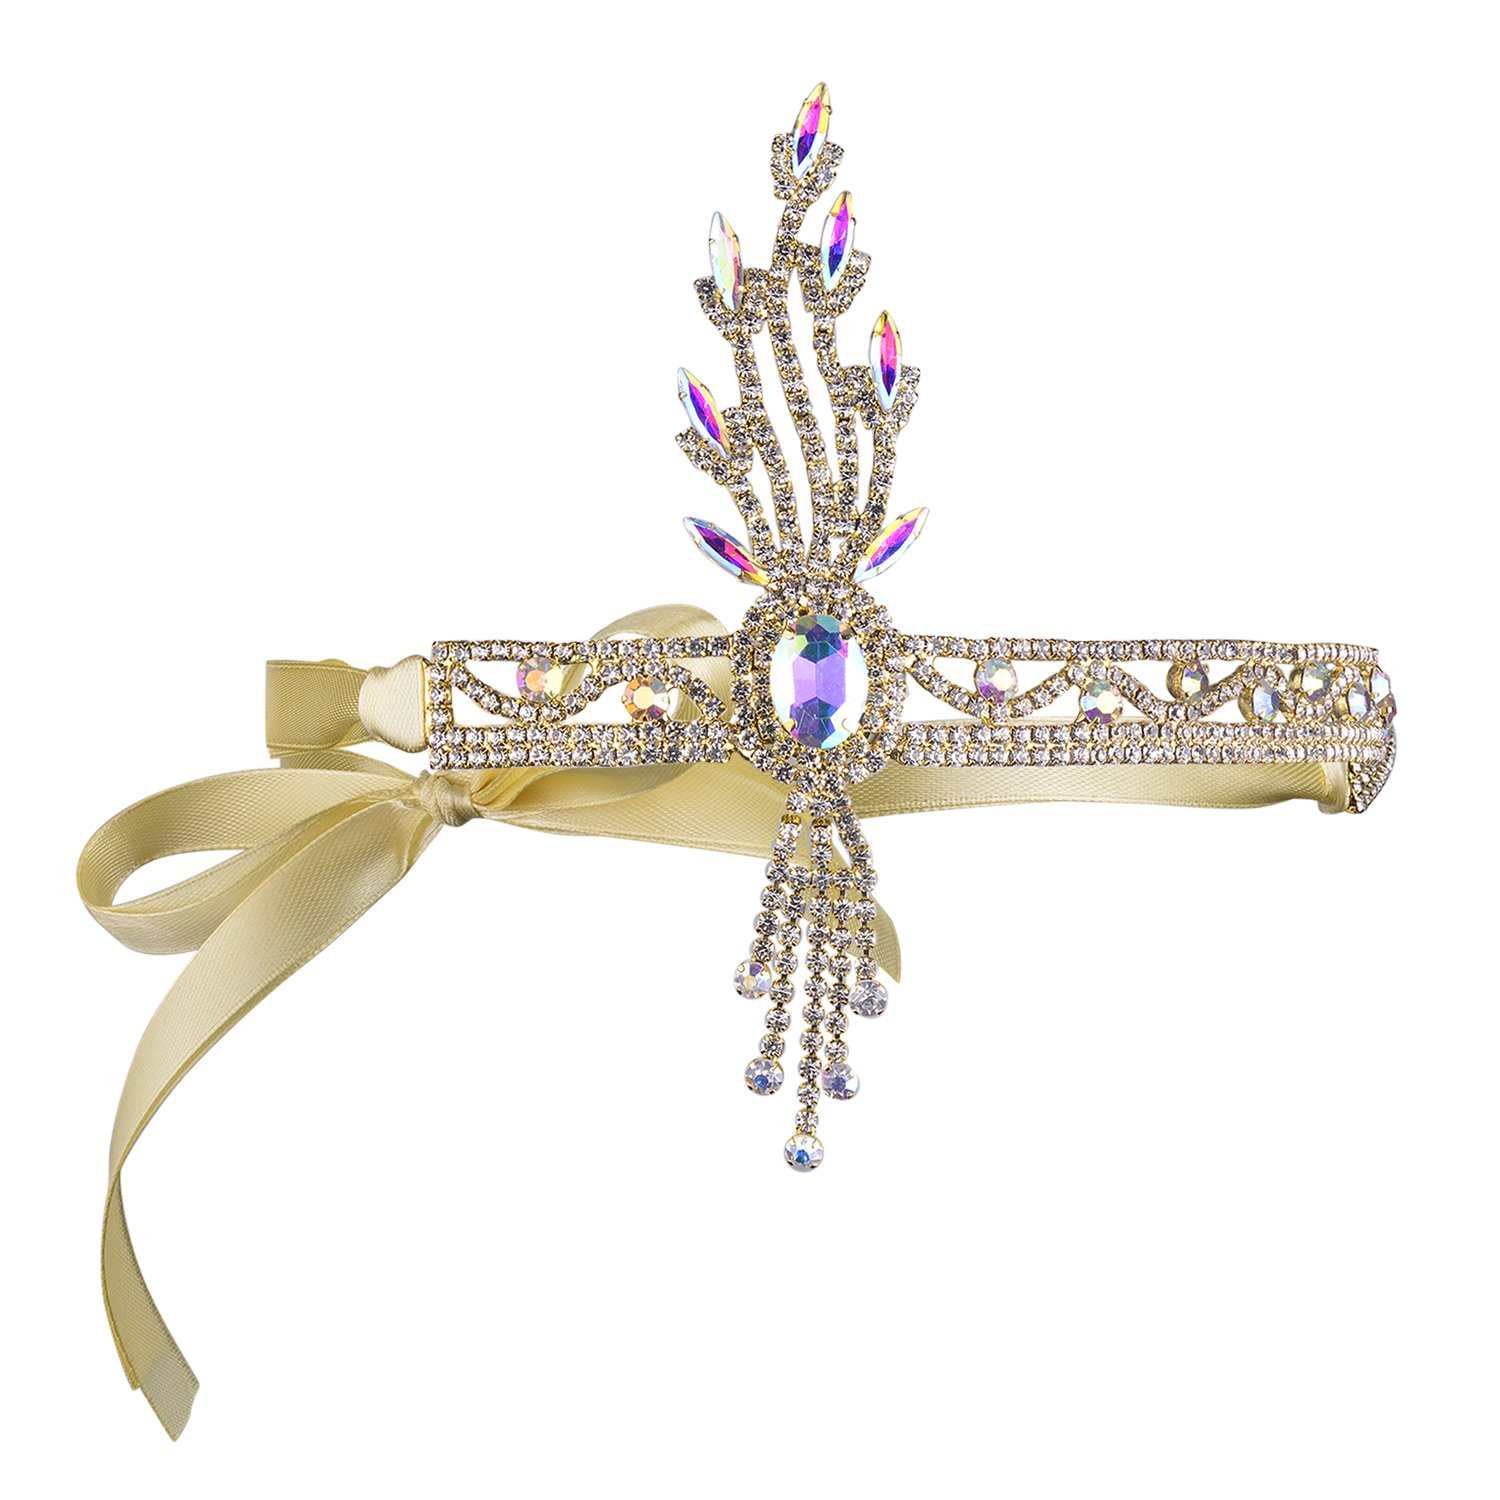 BABEYOND Bling Silver-Tone The Great Gatsby Inspired Leaf Crystal Headband Hair Tiara (Gold)